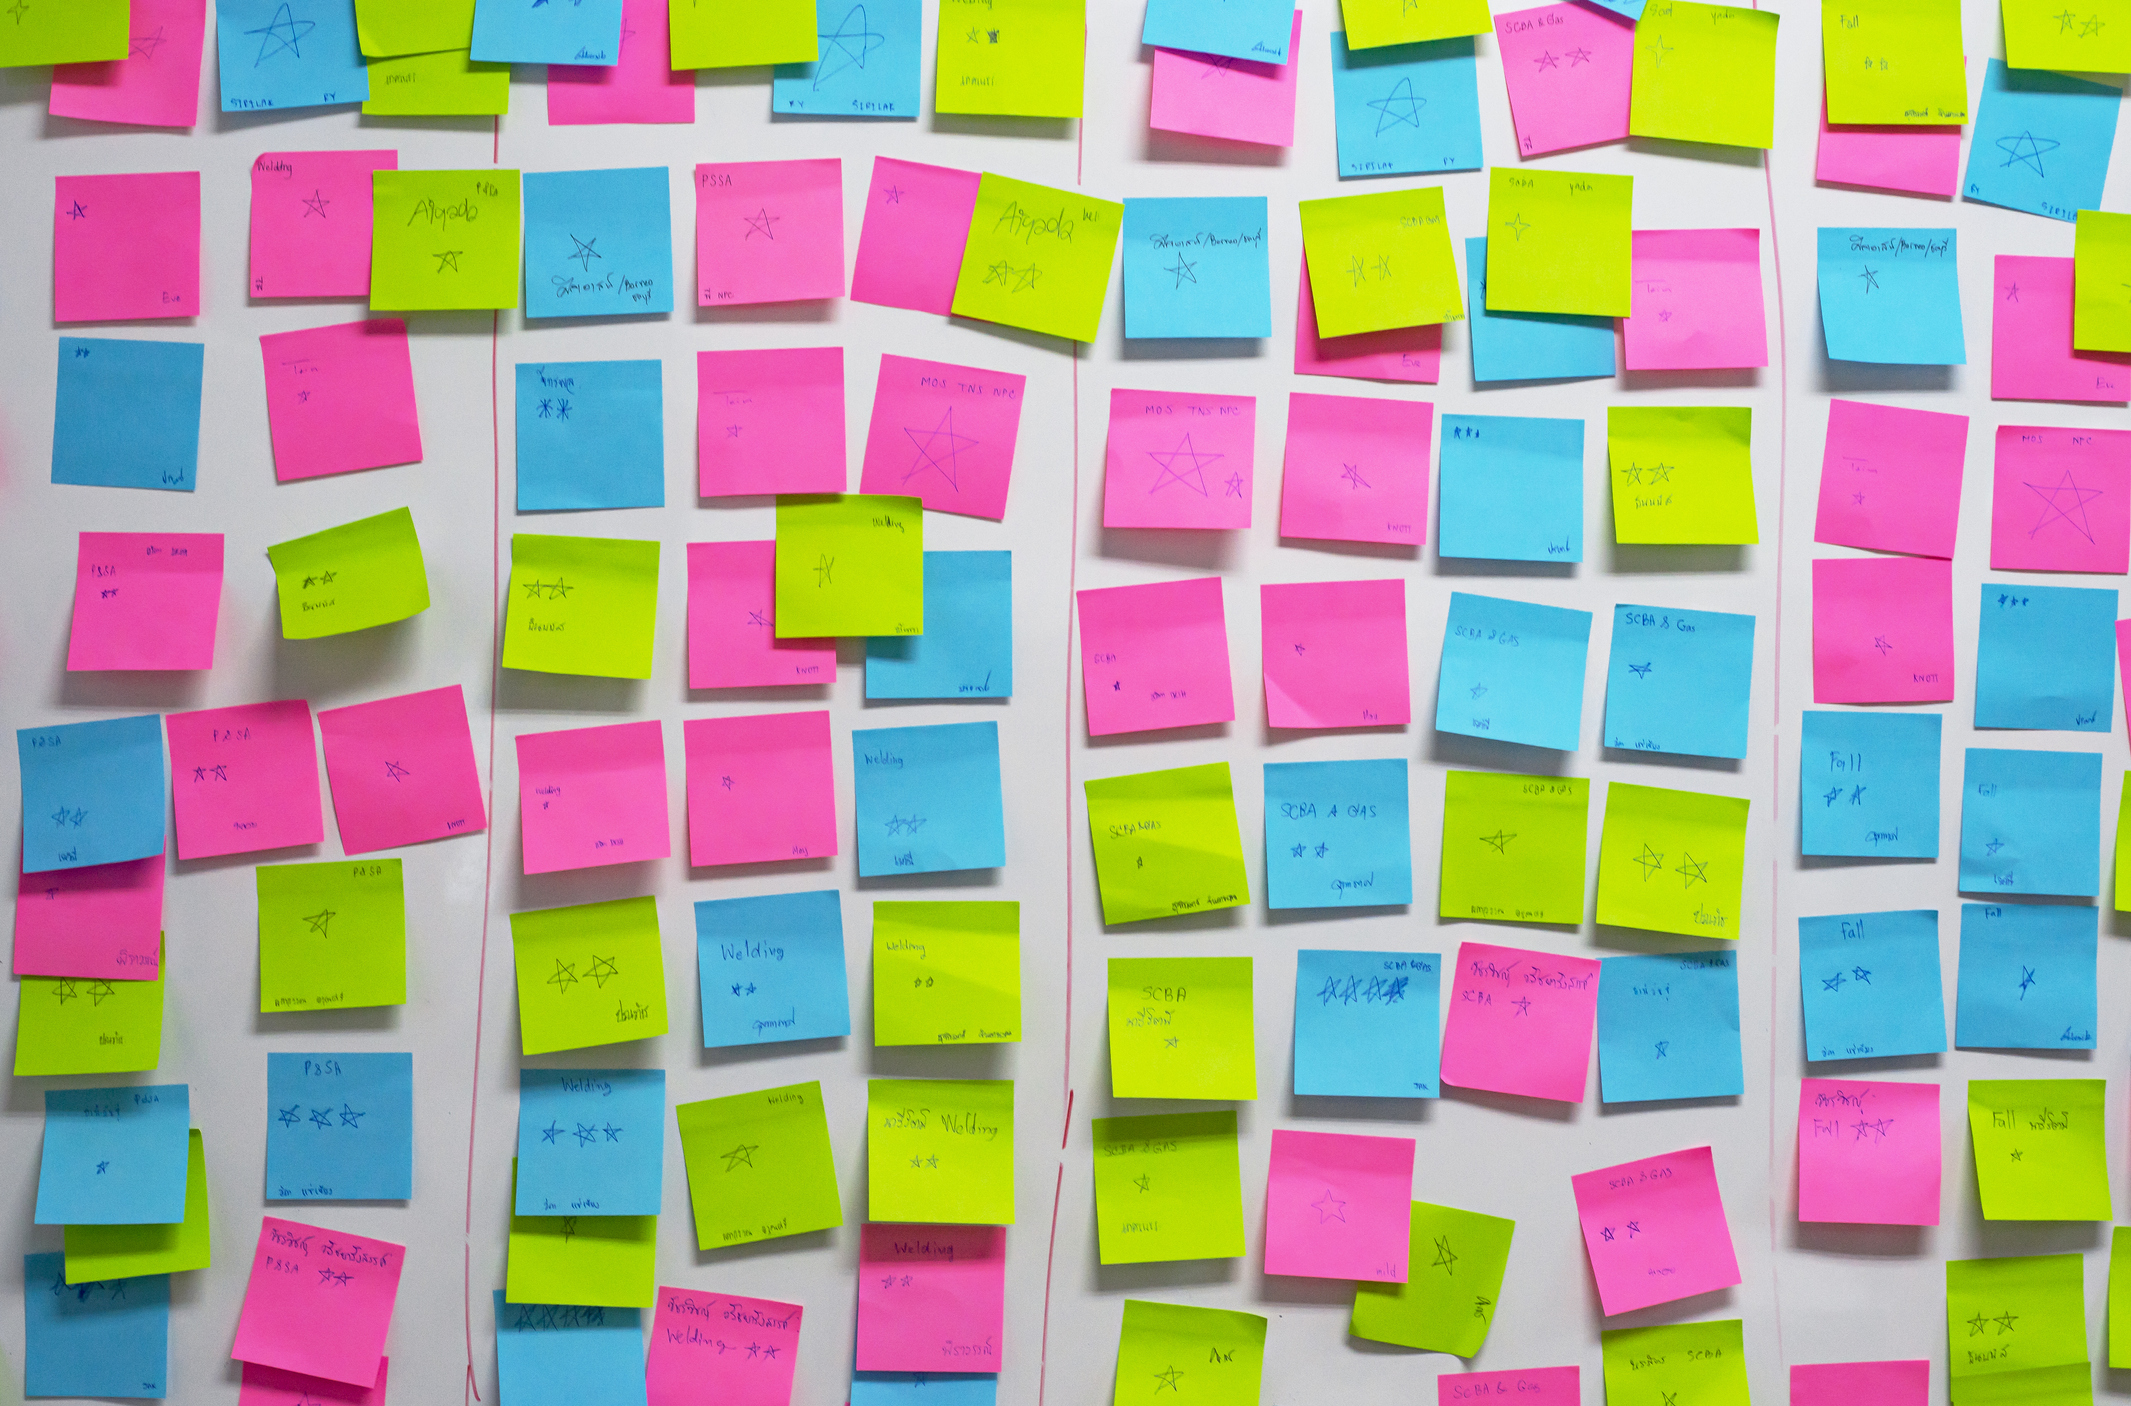 The Post-It note is an office staple used by millions around the world